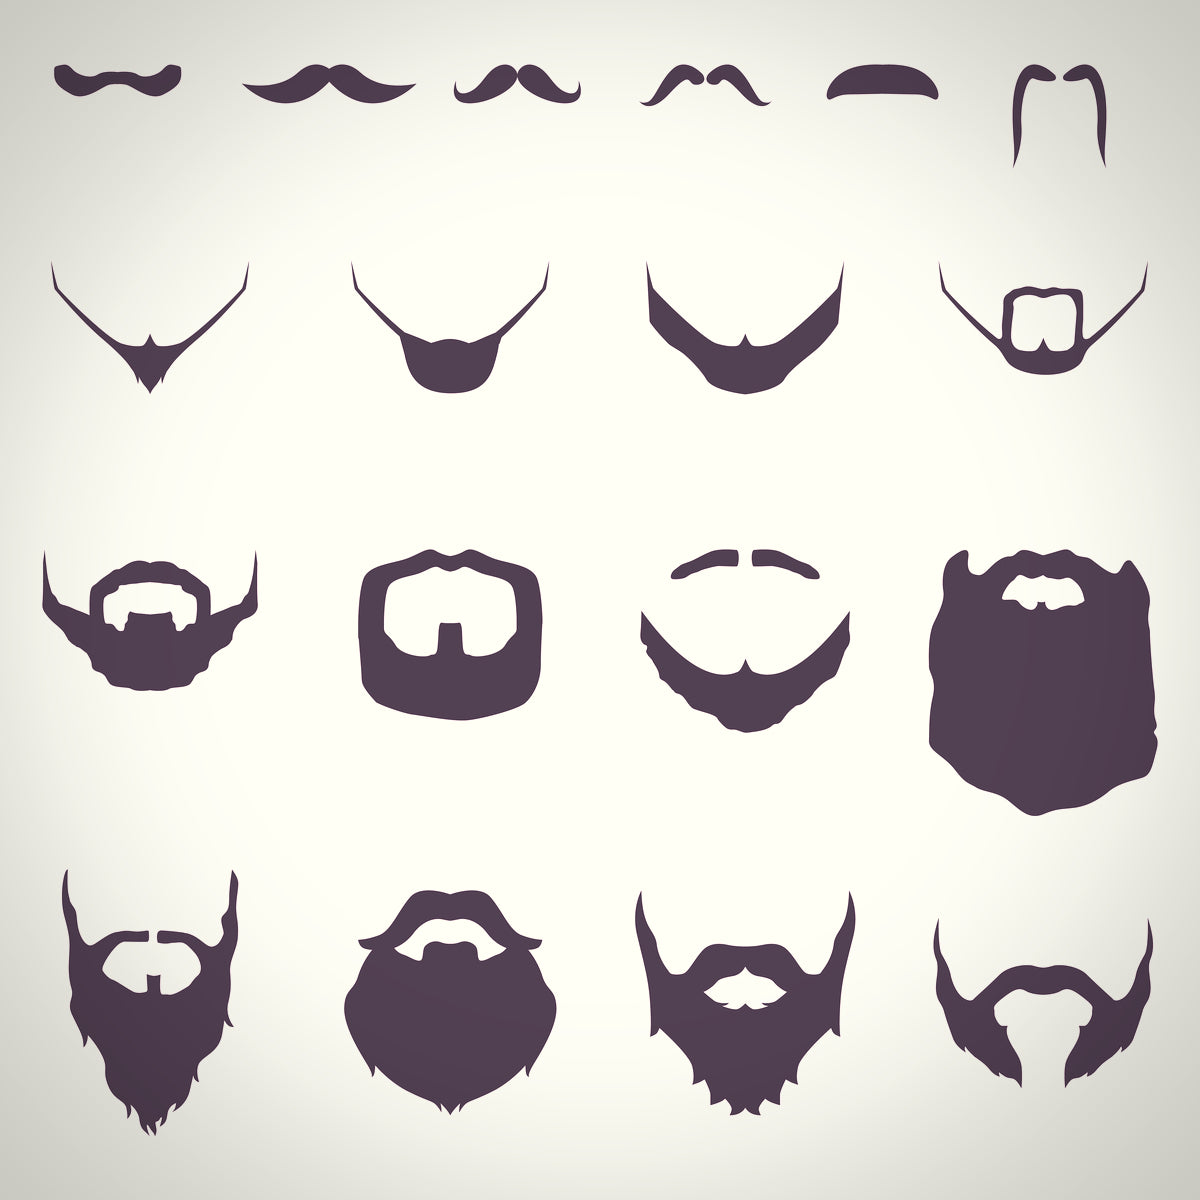 Silhouettes of short and long beard styles